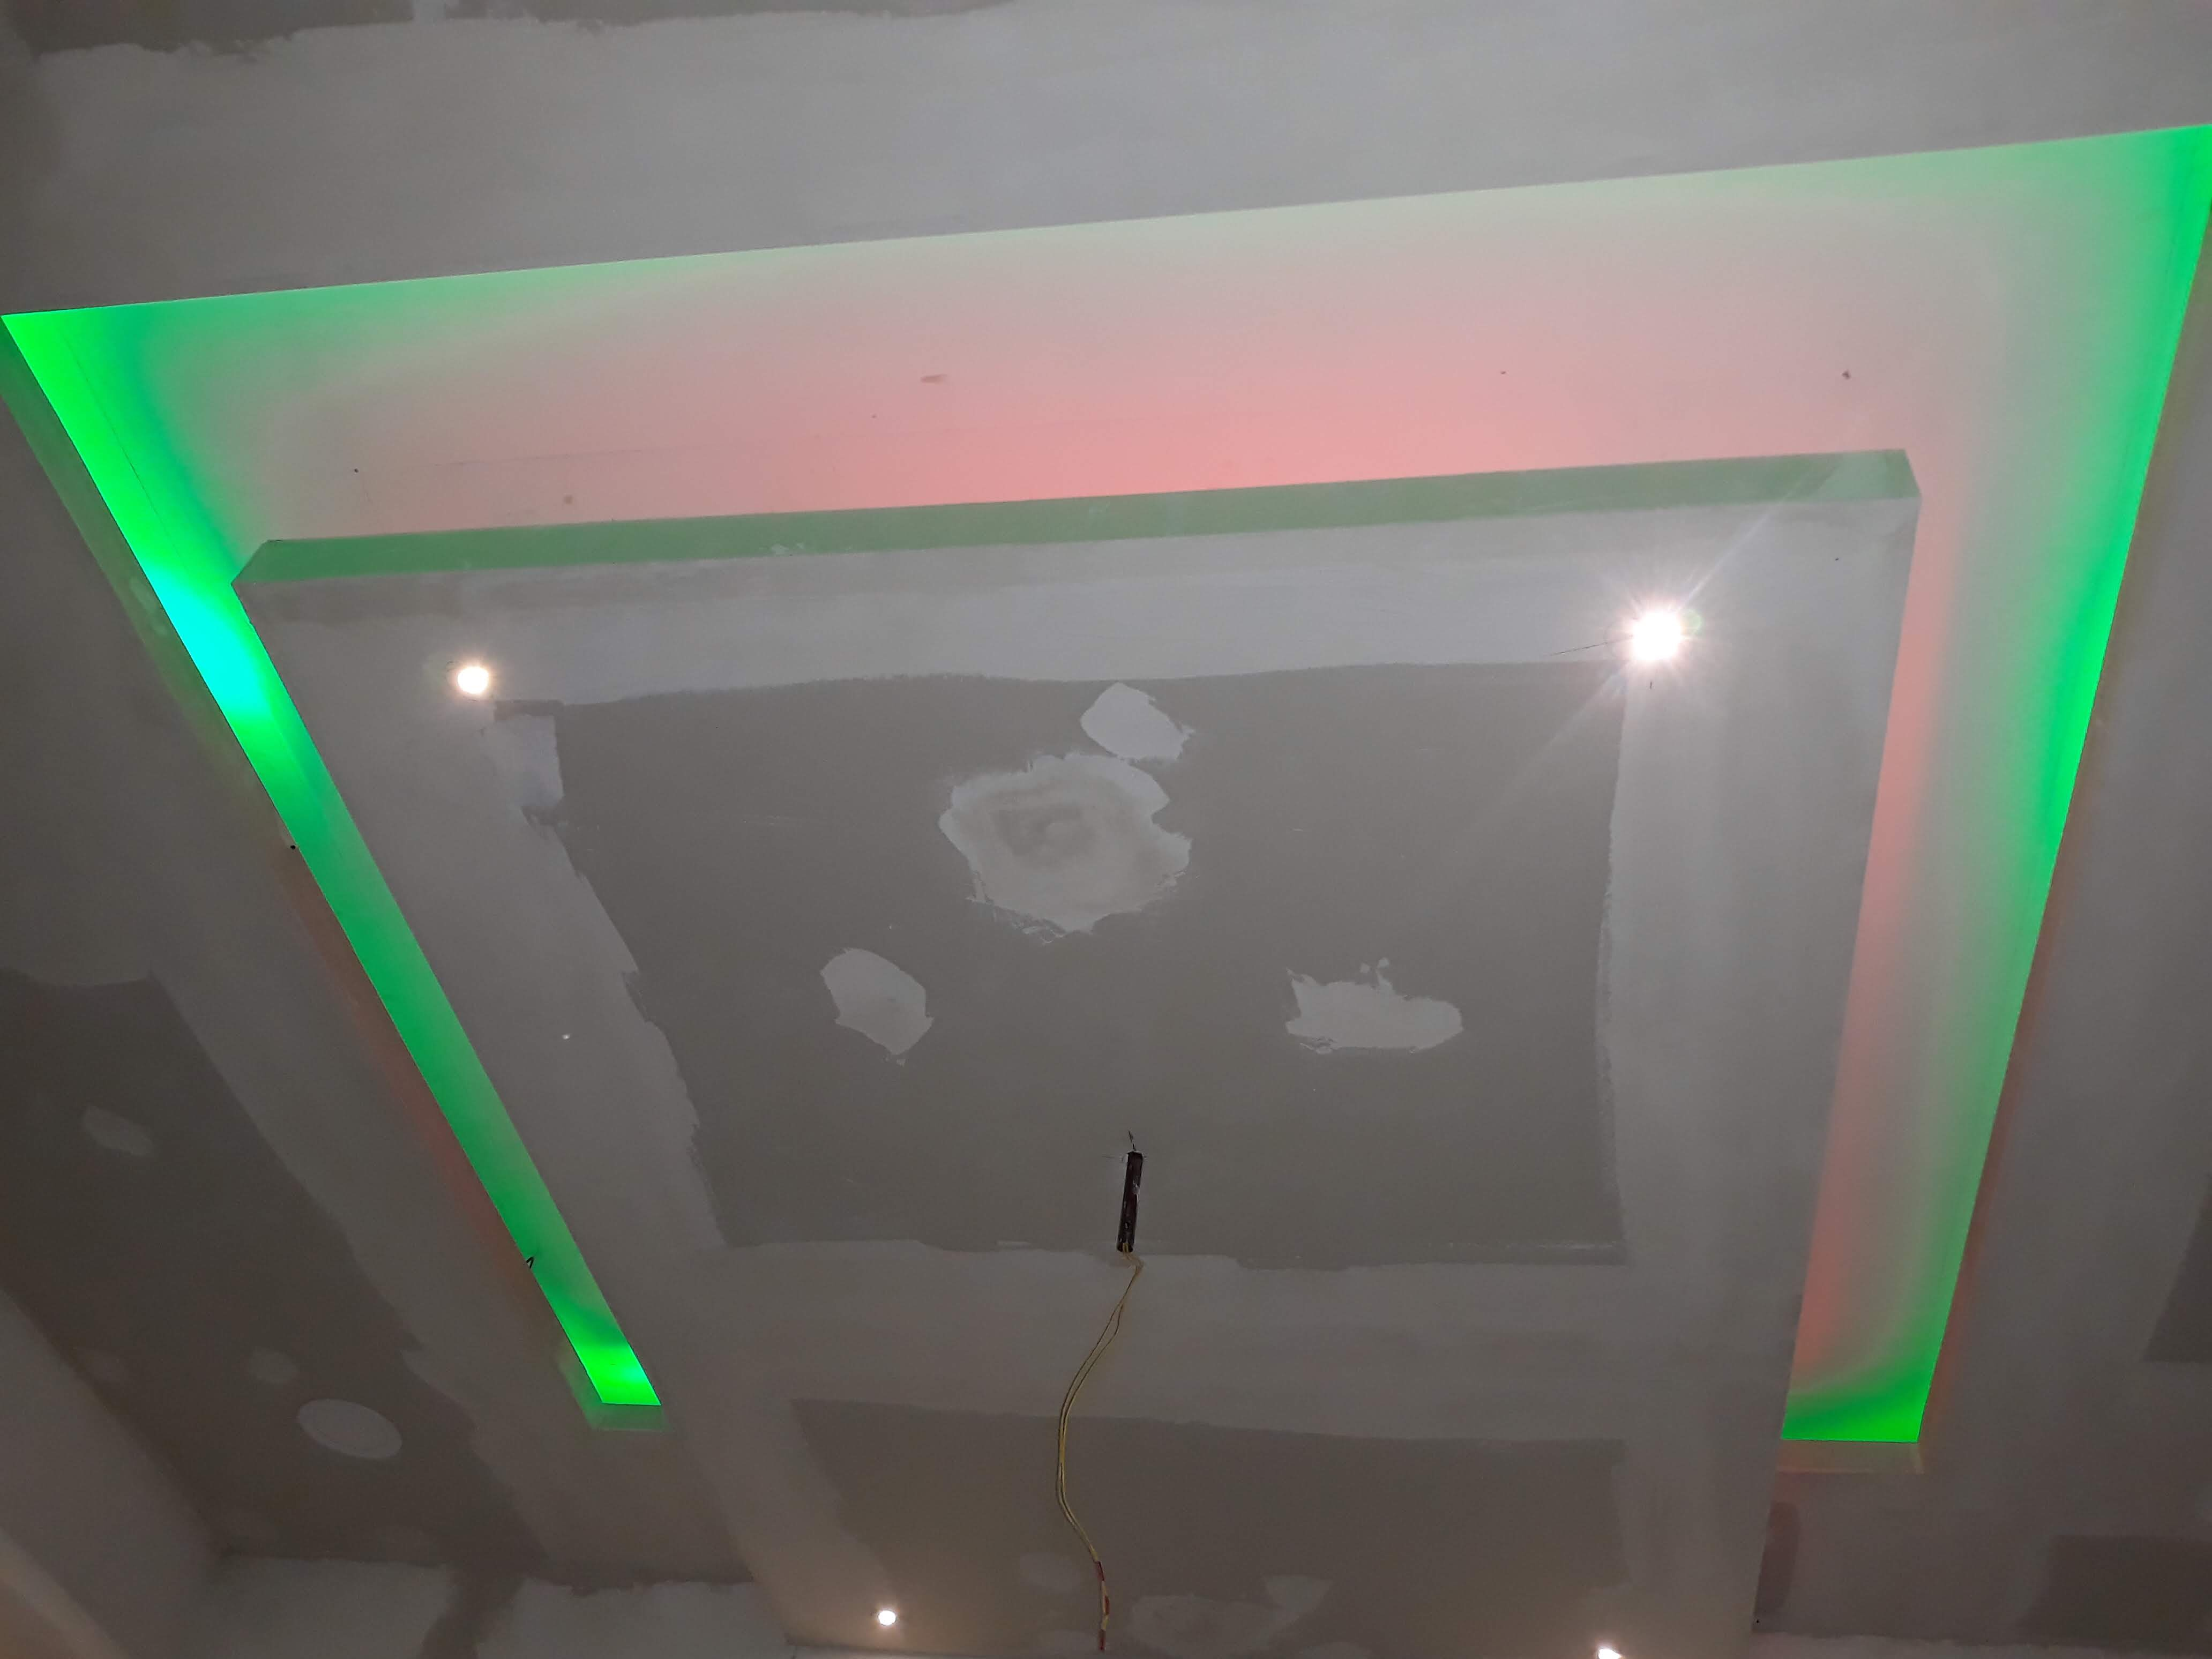 drywall gypsum bod false ceiling , false ceiling , roof ceiling design , gypsum bod false ceiling design , heat prove false ceiling design, false ceiling ,